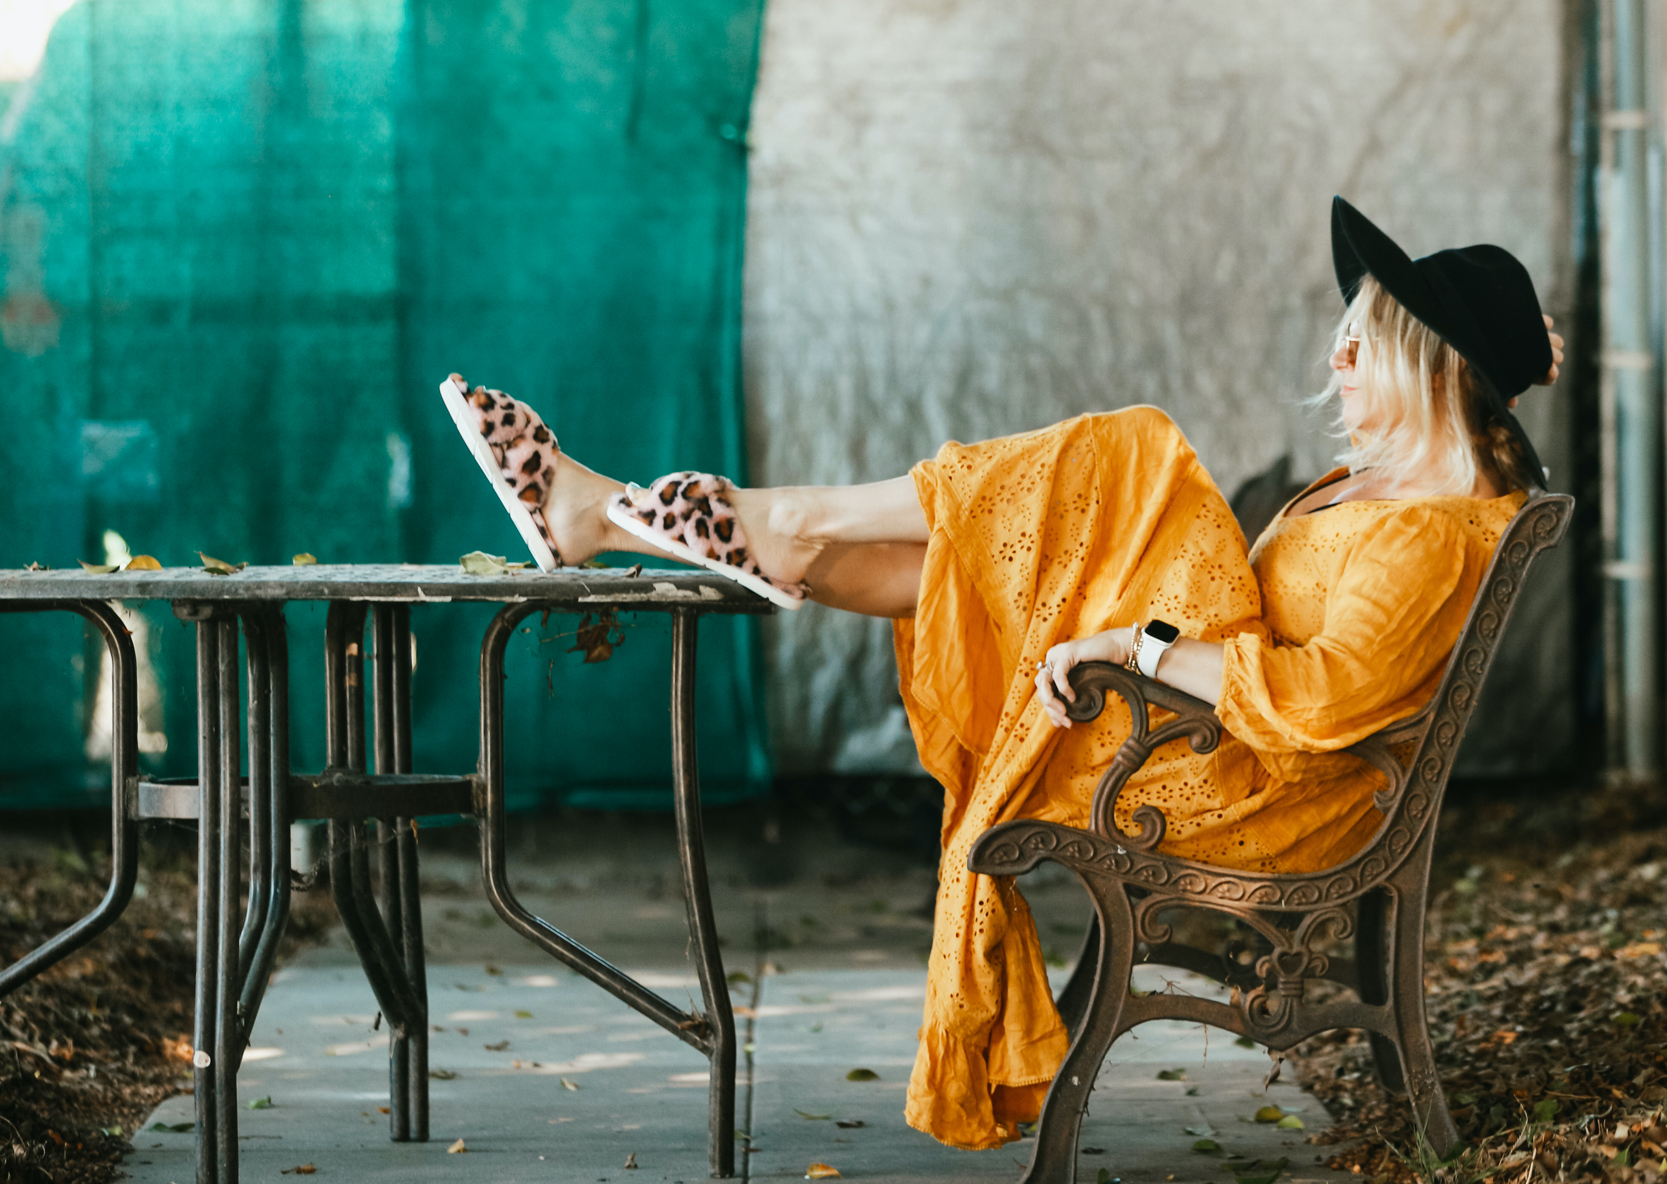 woman sitting with feet up